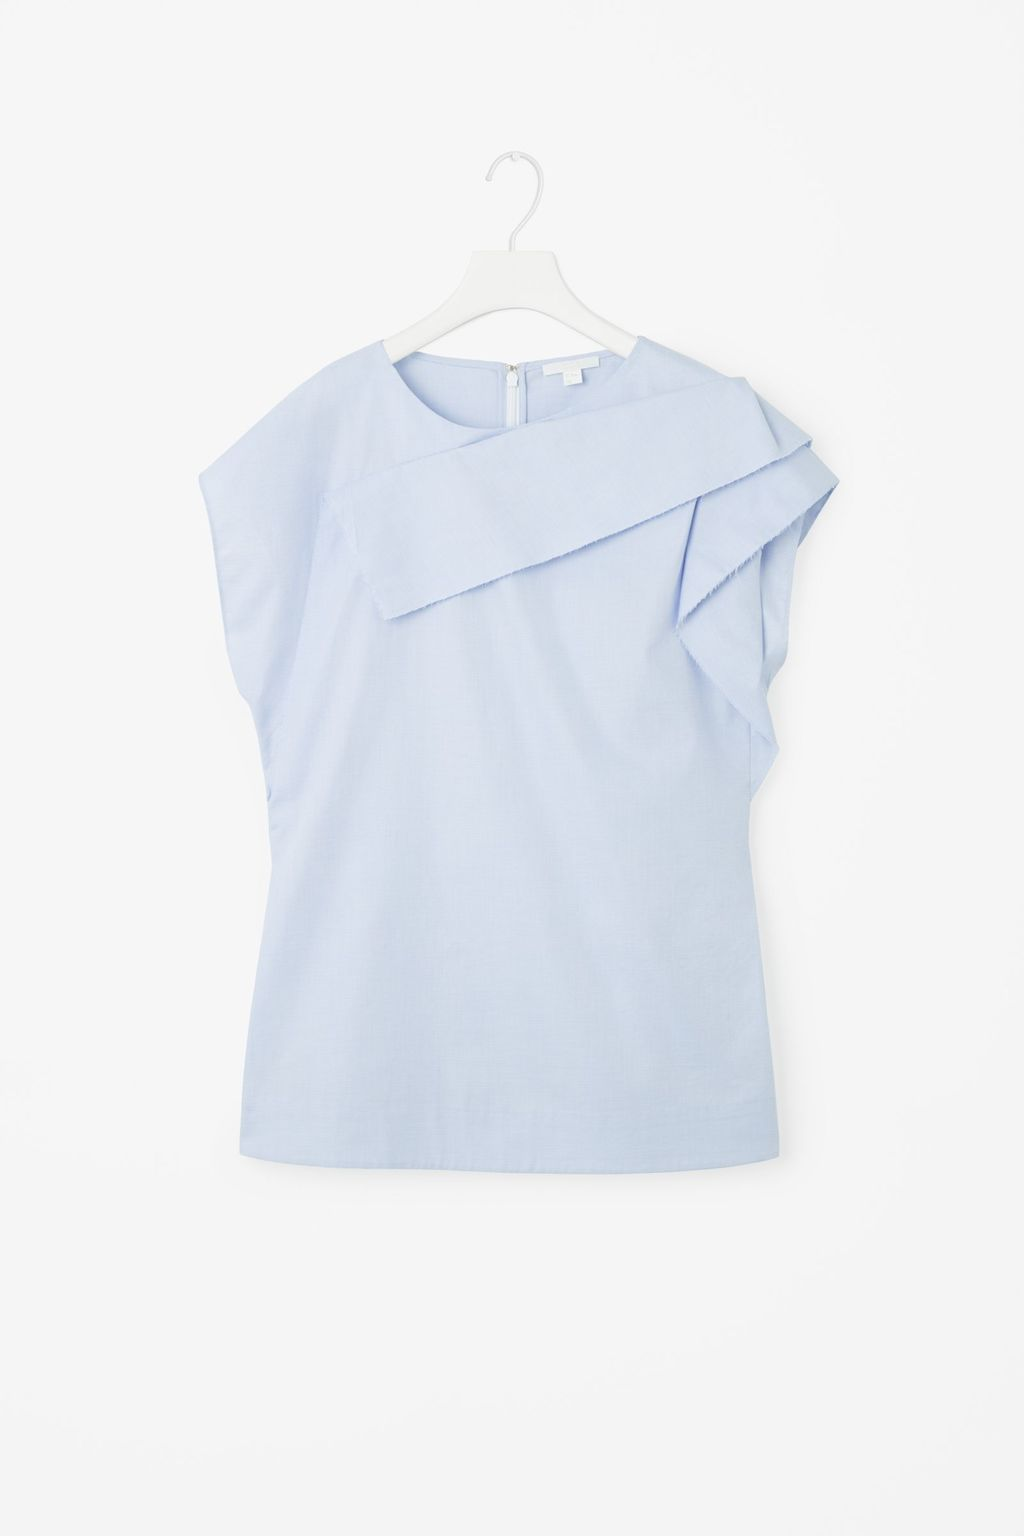 Folded Drape Top - sleeve style: capped; pattern: plain; length: below the bottom; predominant colour: pale blue; occasions: casual, creative work; style: top; fibres: cotton - 100%; fit: body skimming; neckline: crew; sleeve length: short sleeve; texture group: cotton feel fabrics; bust detail: bulky details at bust; pattern type: fabric; season: s/s 2016; wardrobe: highlight